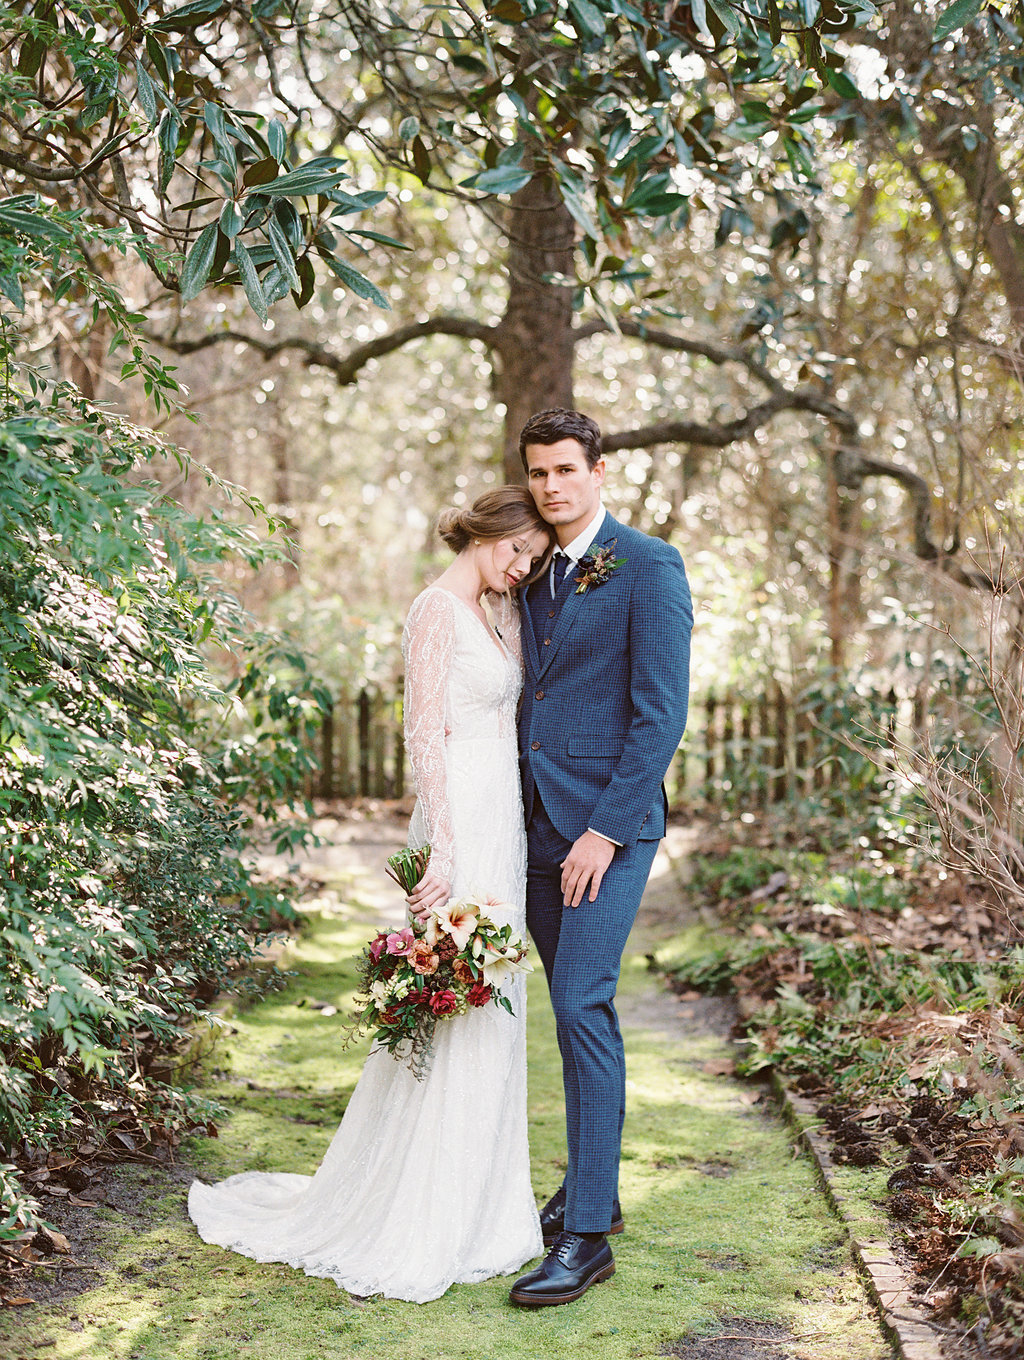 wavering-place-south-carolina-wedding-event-planner-jessica-rourke-390